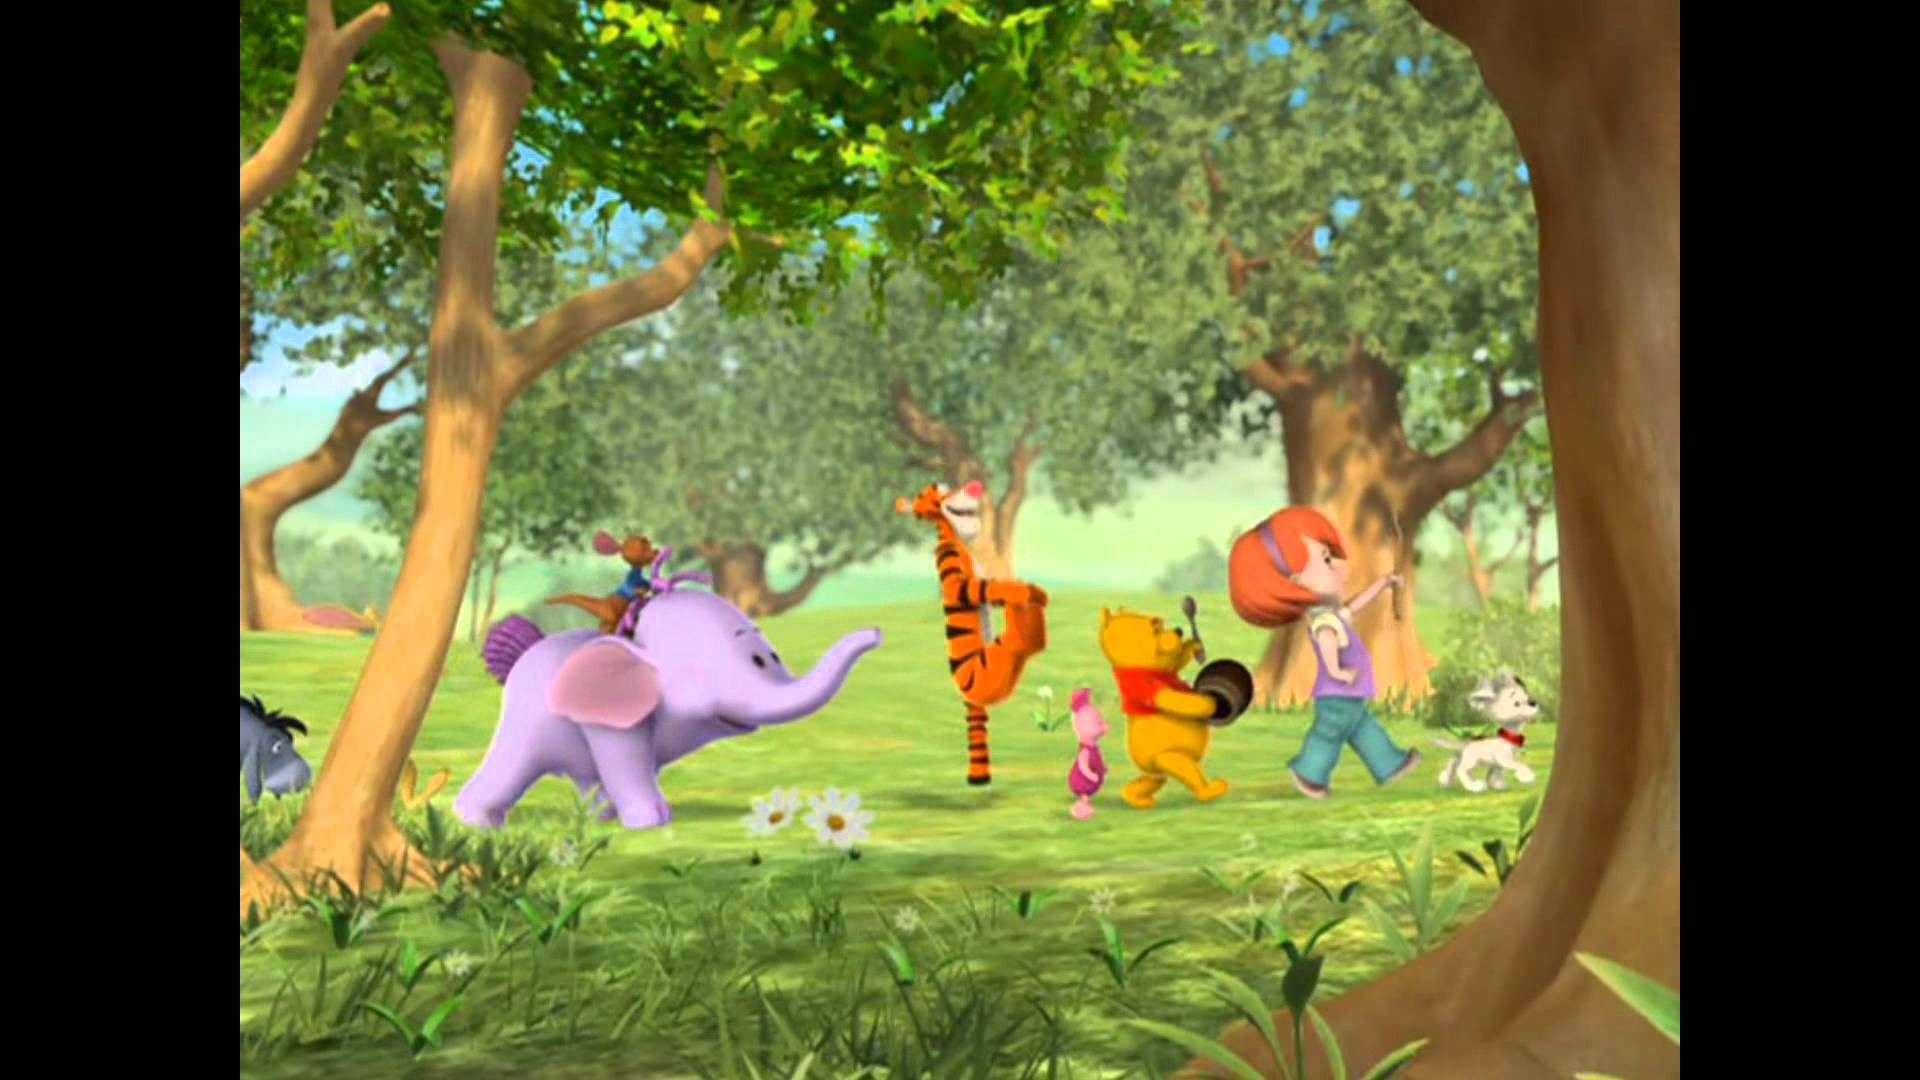 My friends tigger pooh wallpapers winnie the pooh hd wallpapers hd wallpapers inn altavistaventures Images